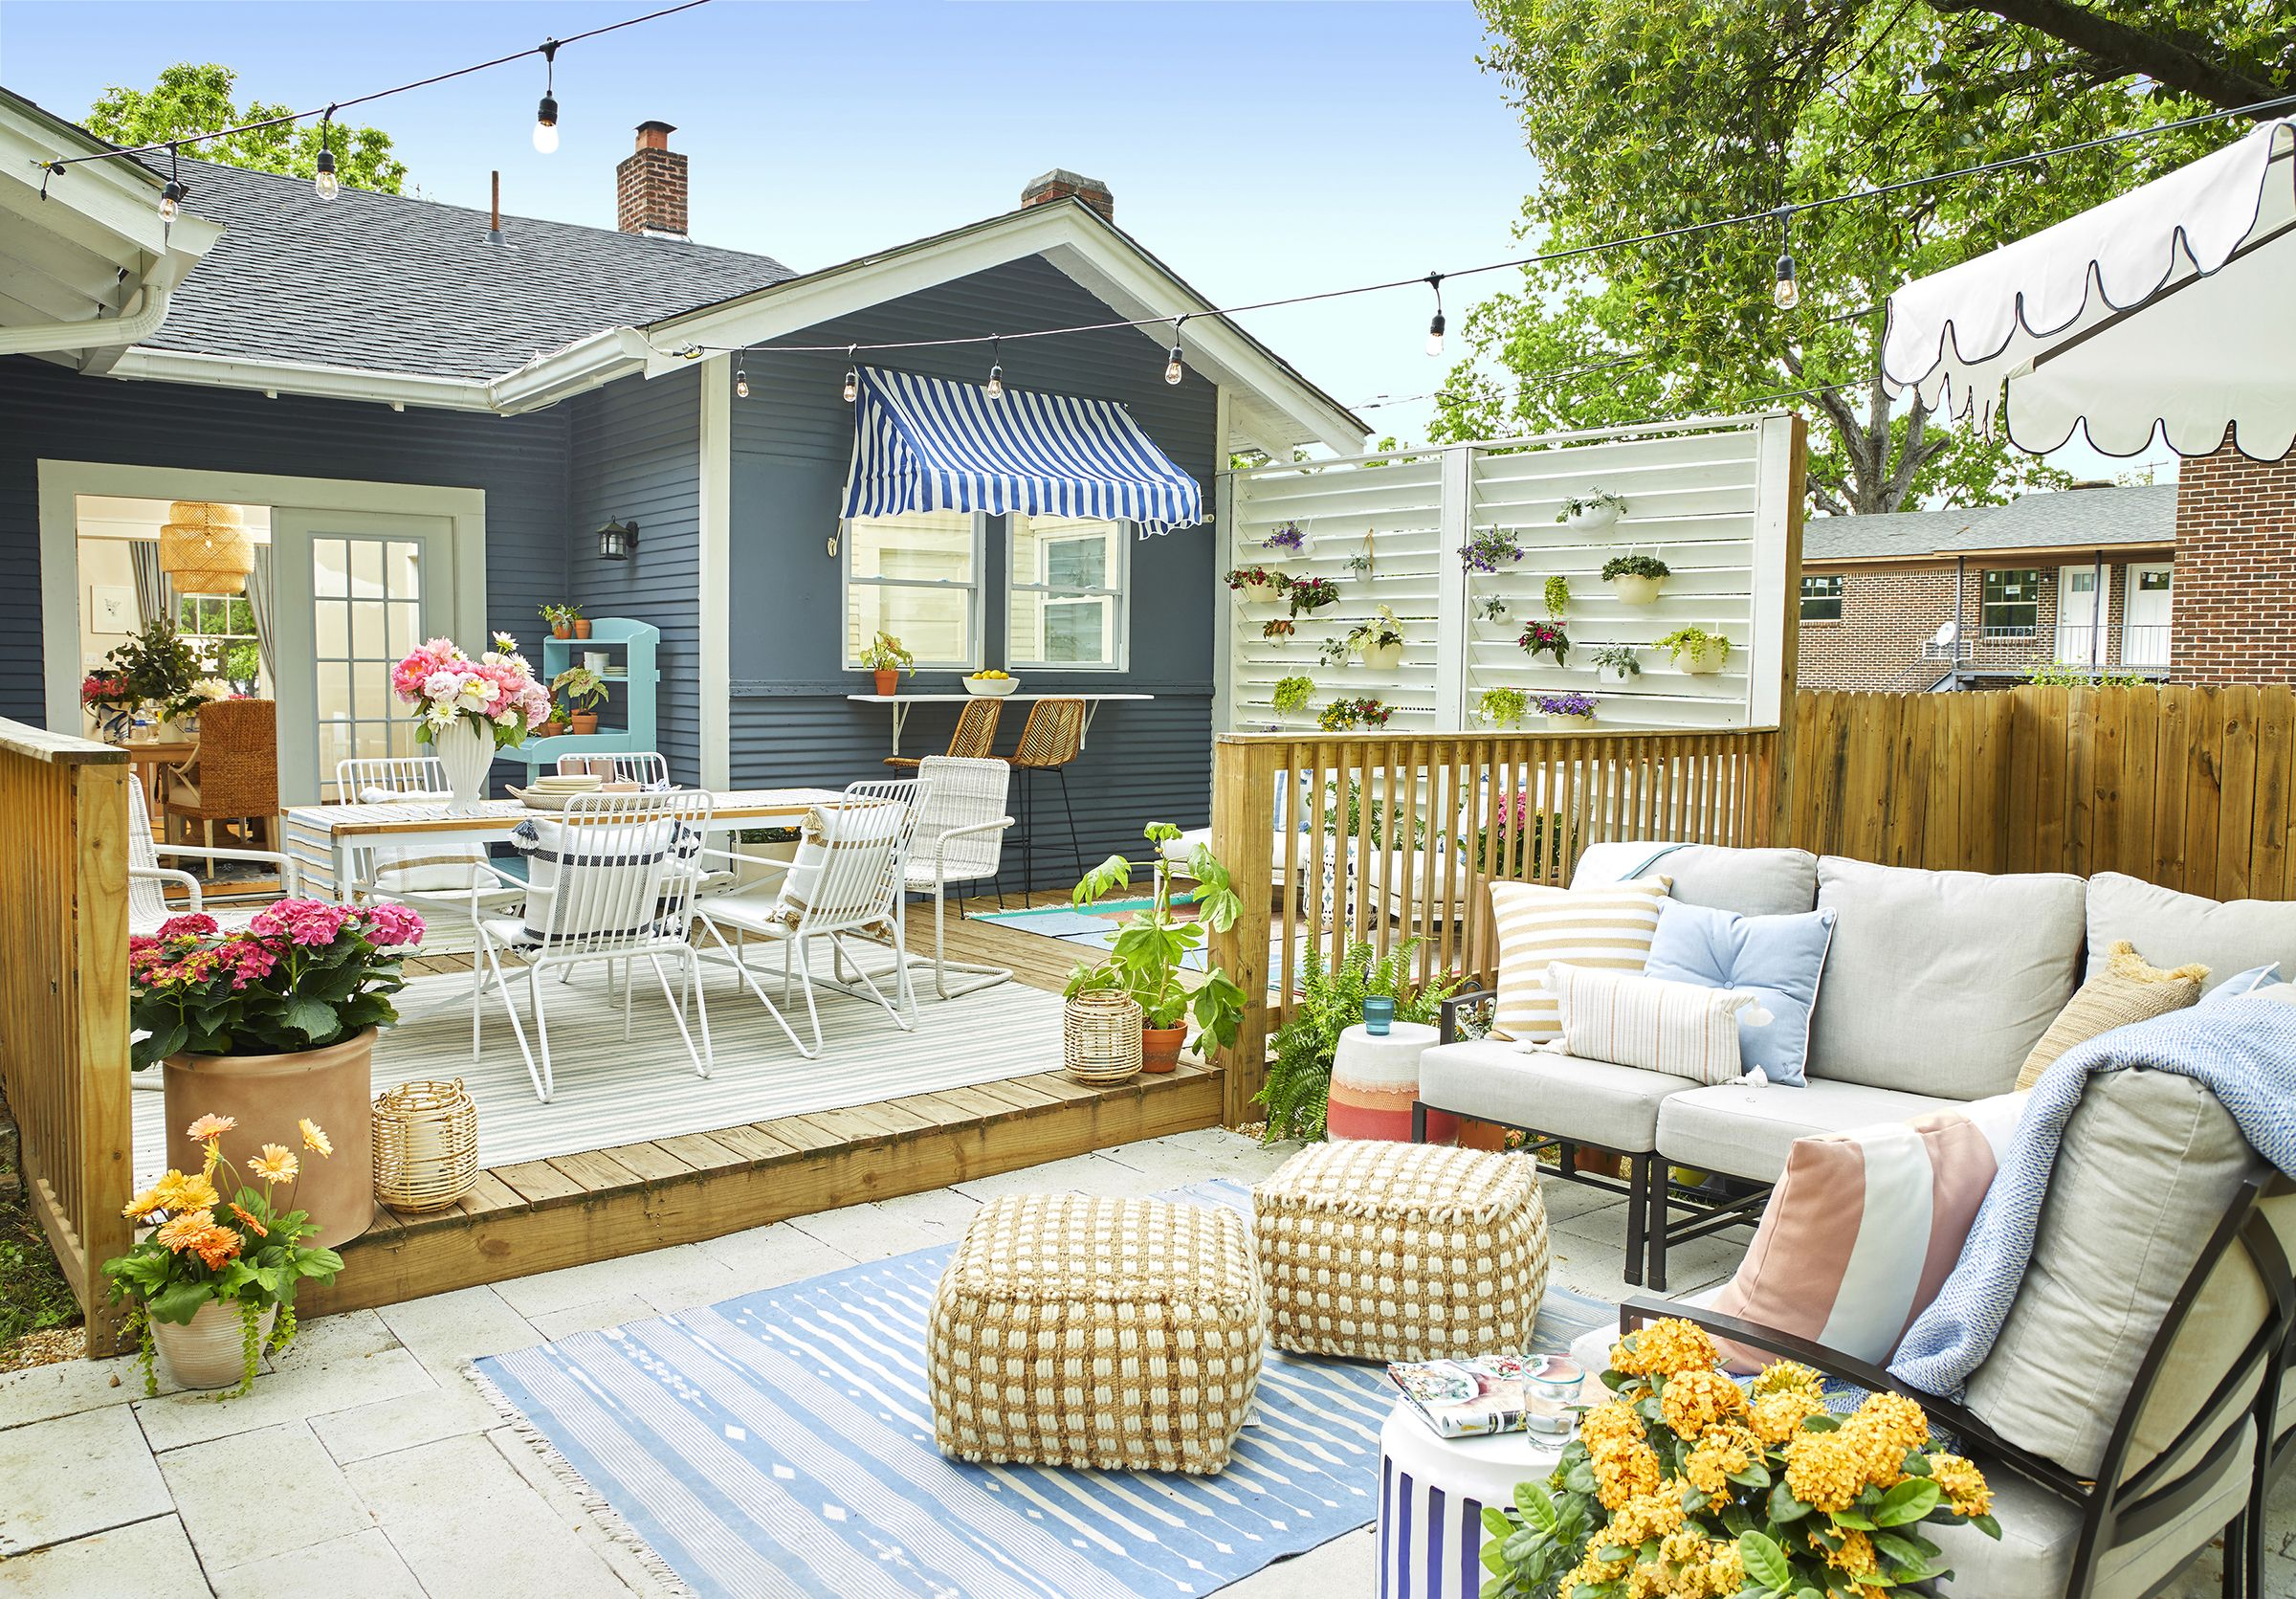 Terrific 35 Best Patio And Porch Design Ideas Decorating Your Gamerscity Chair Design For Home Gamerscityorg